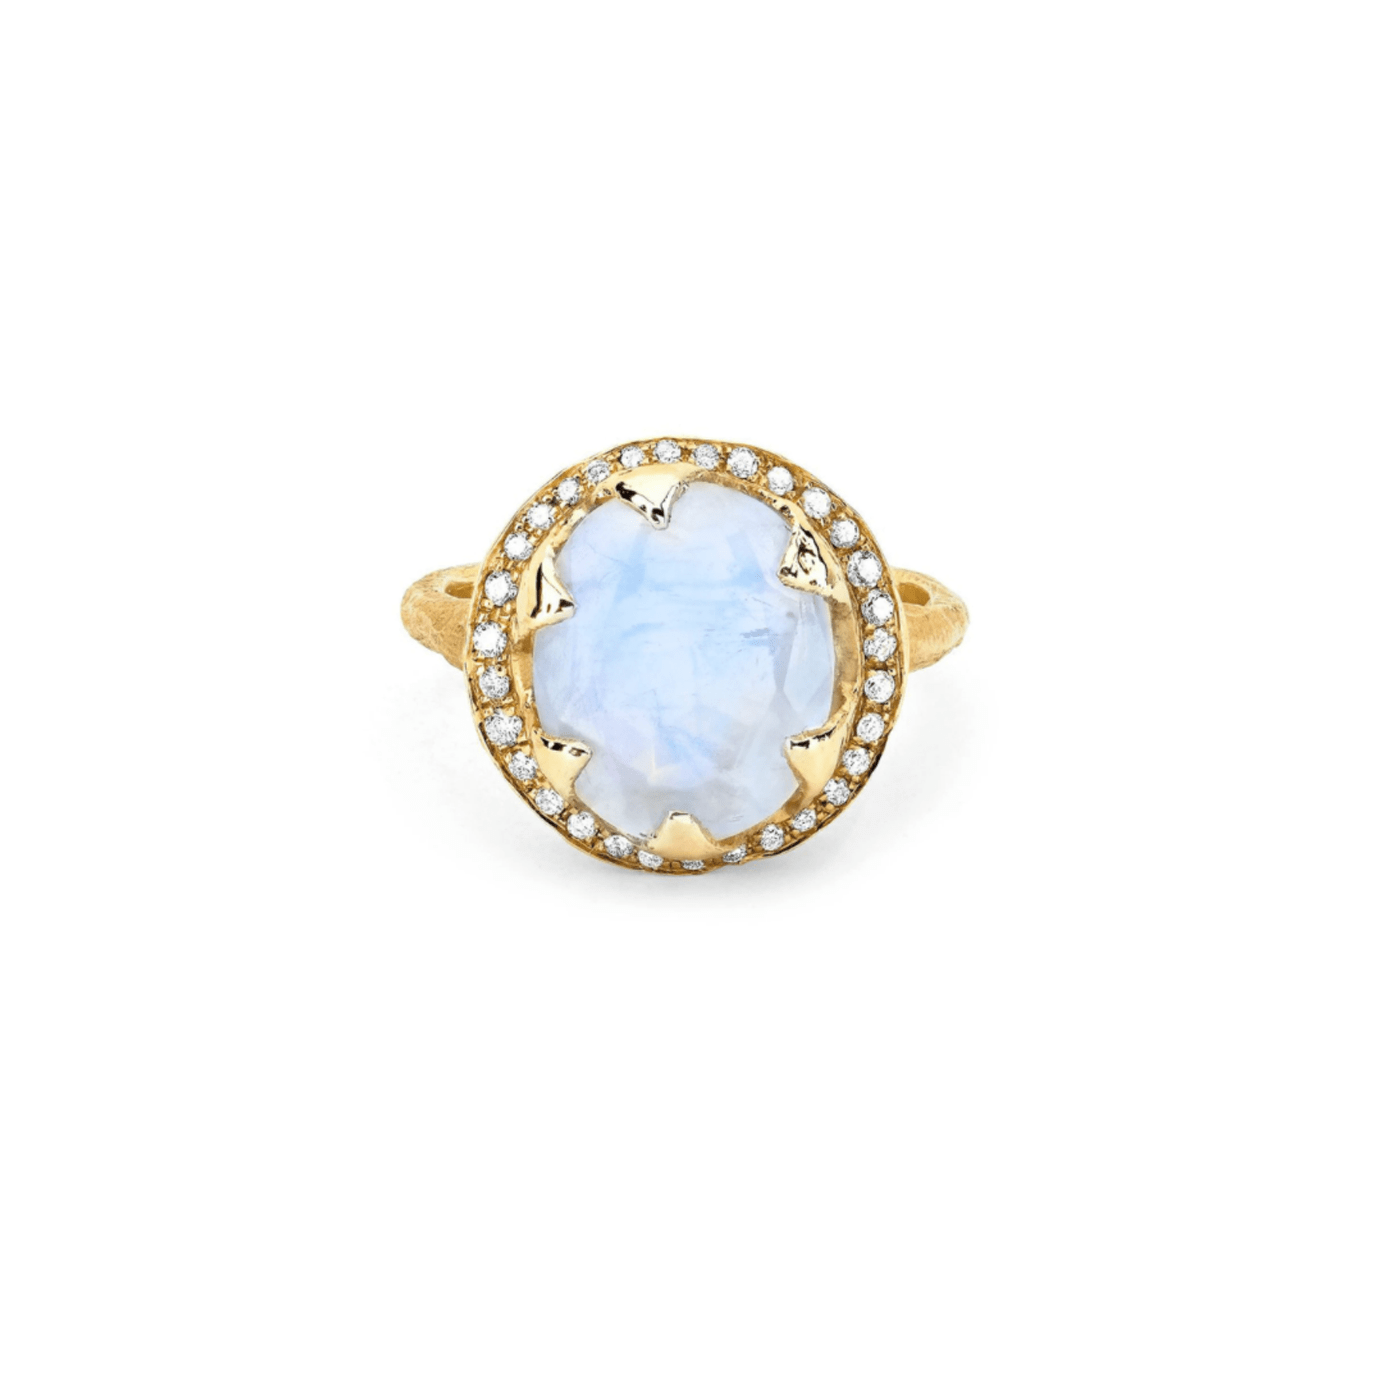 Baby Queen Oval Moonstone Ring with Full Pavé Diamond Halo